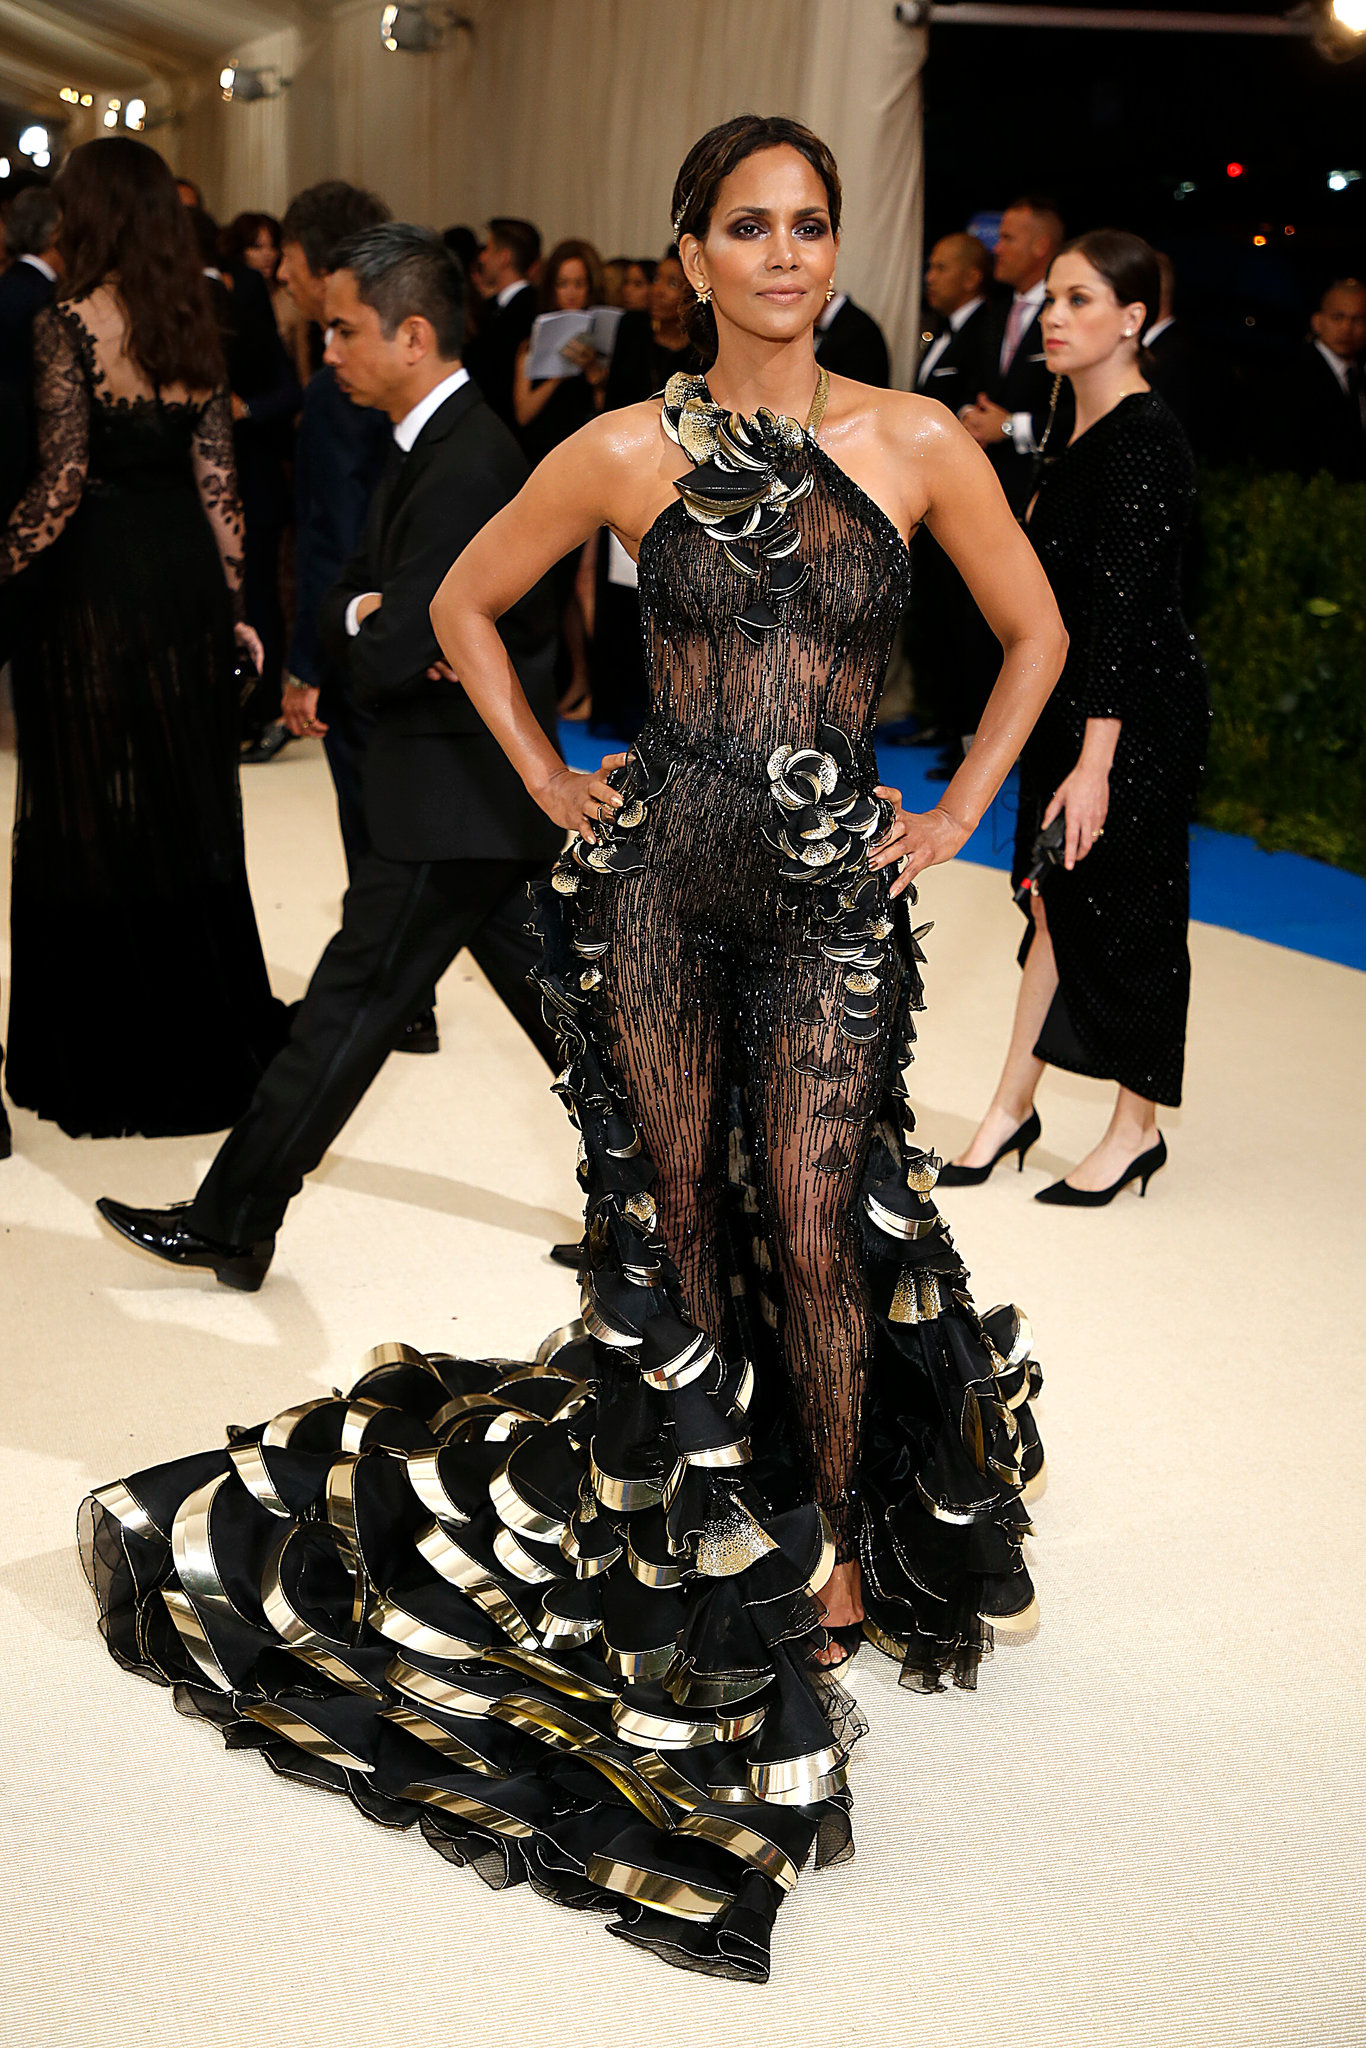 Halle Berry in Versace Dress